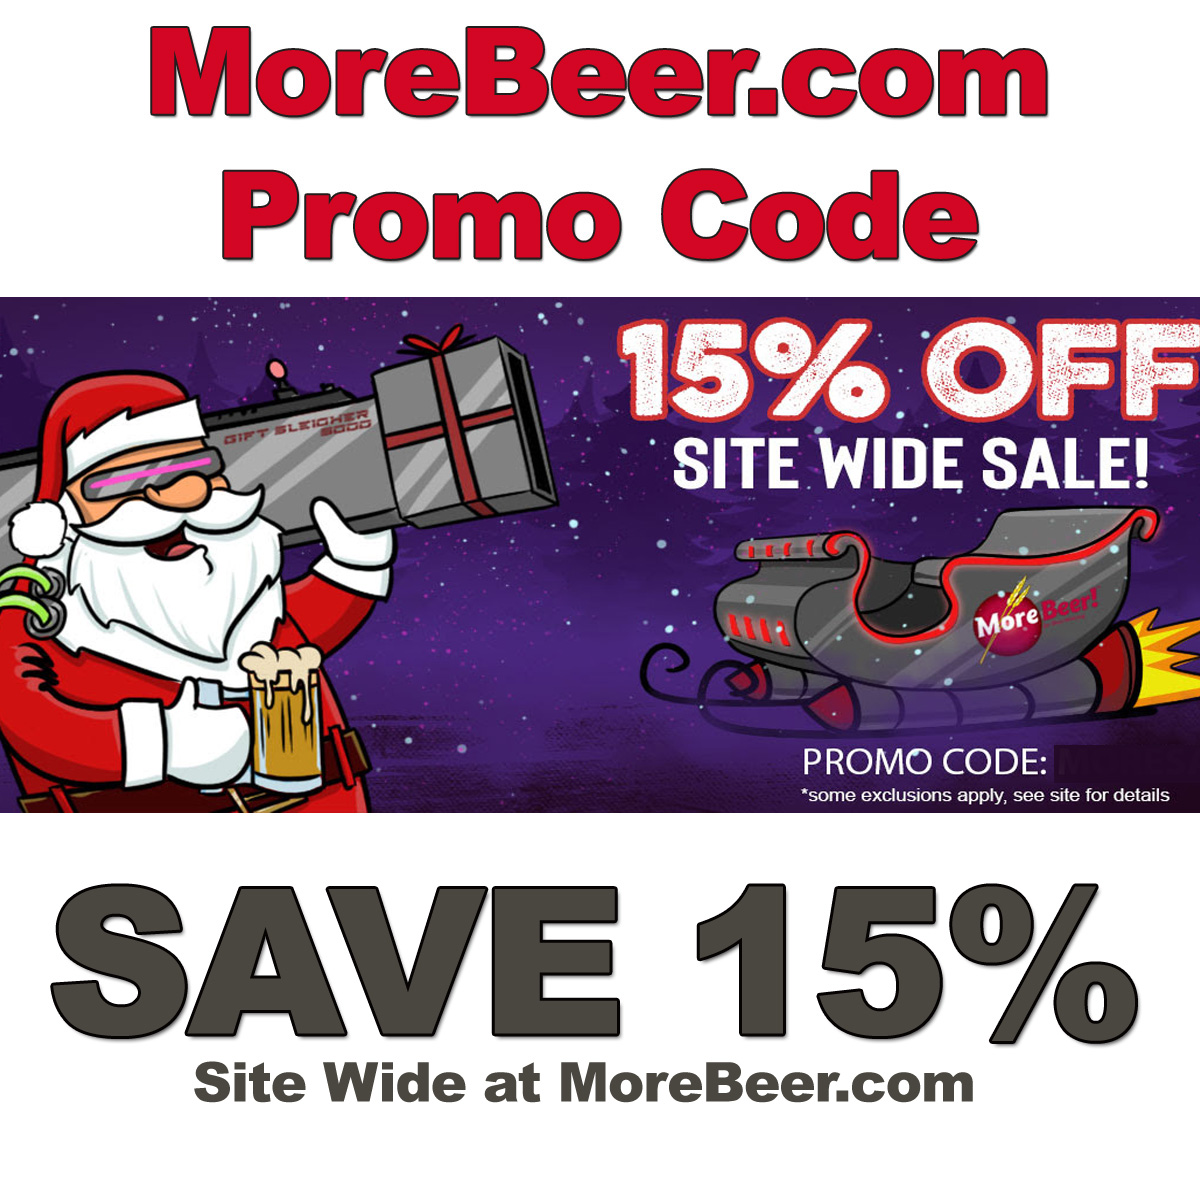 MoreBeer Save 15% Site Wide at MoreBeer.com with this More Beer Promo Code for December Coupon Code